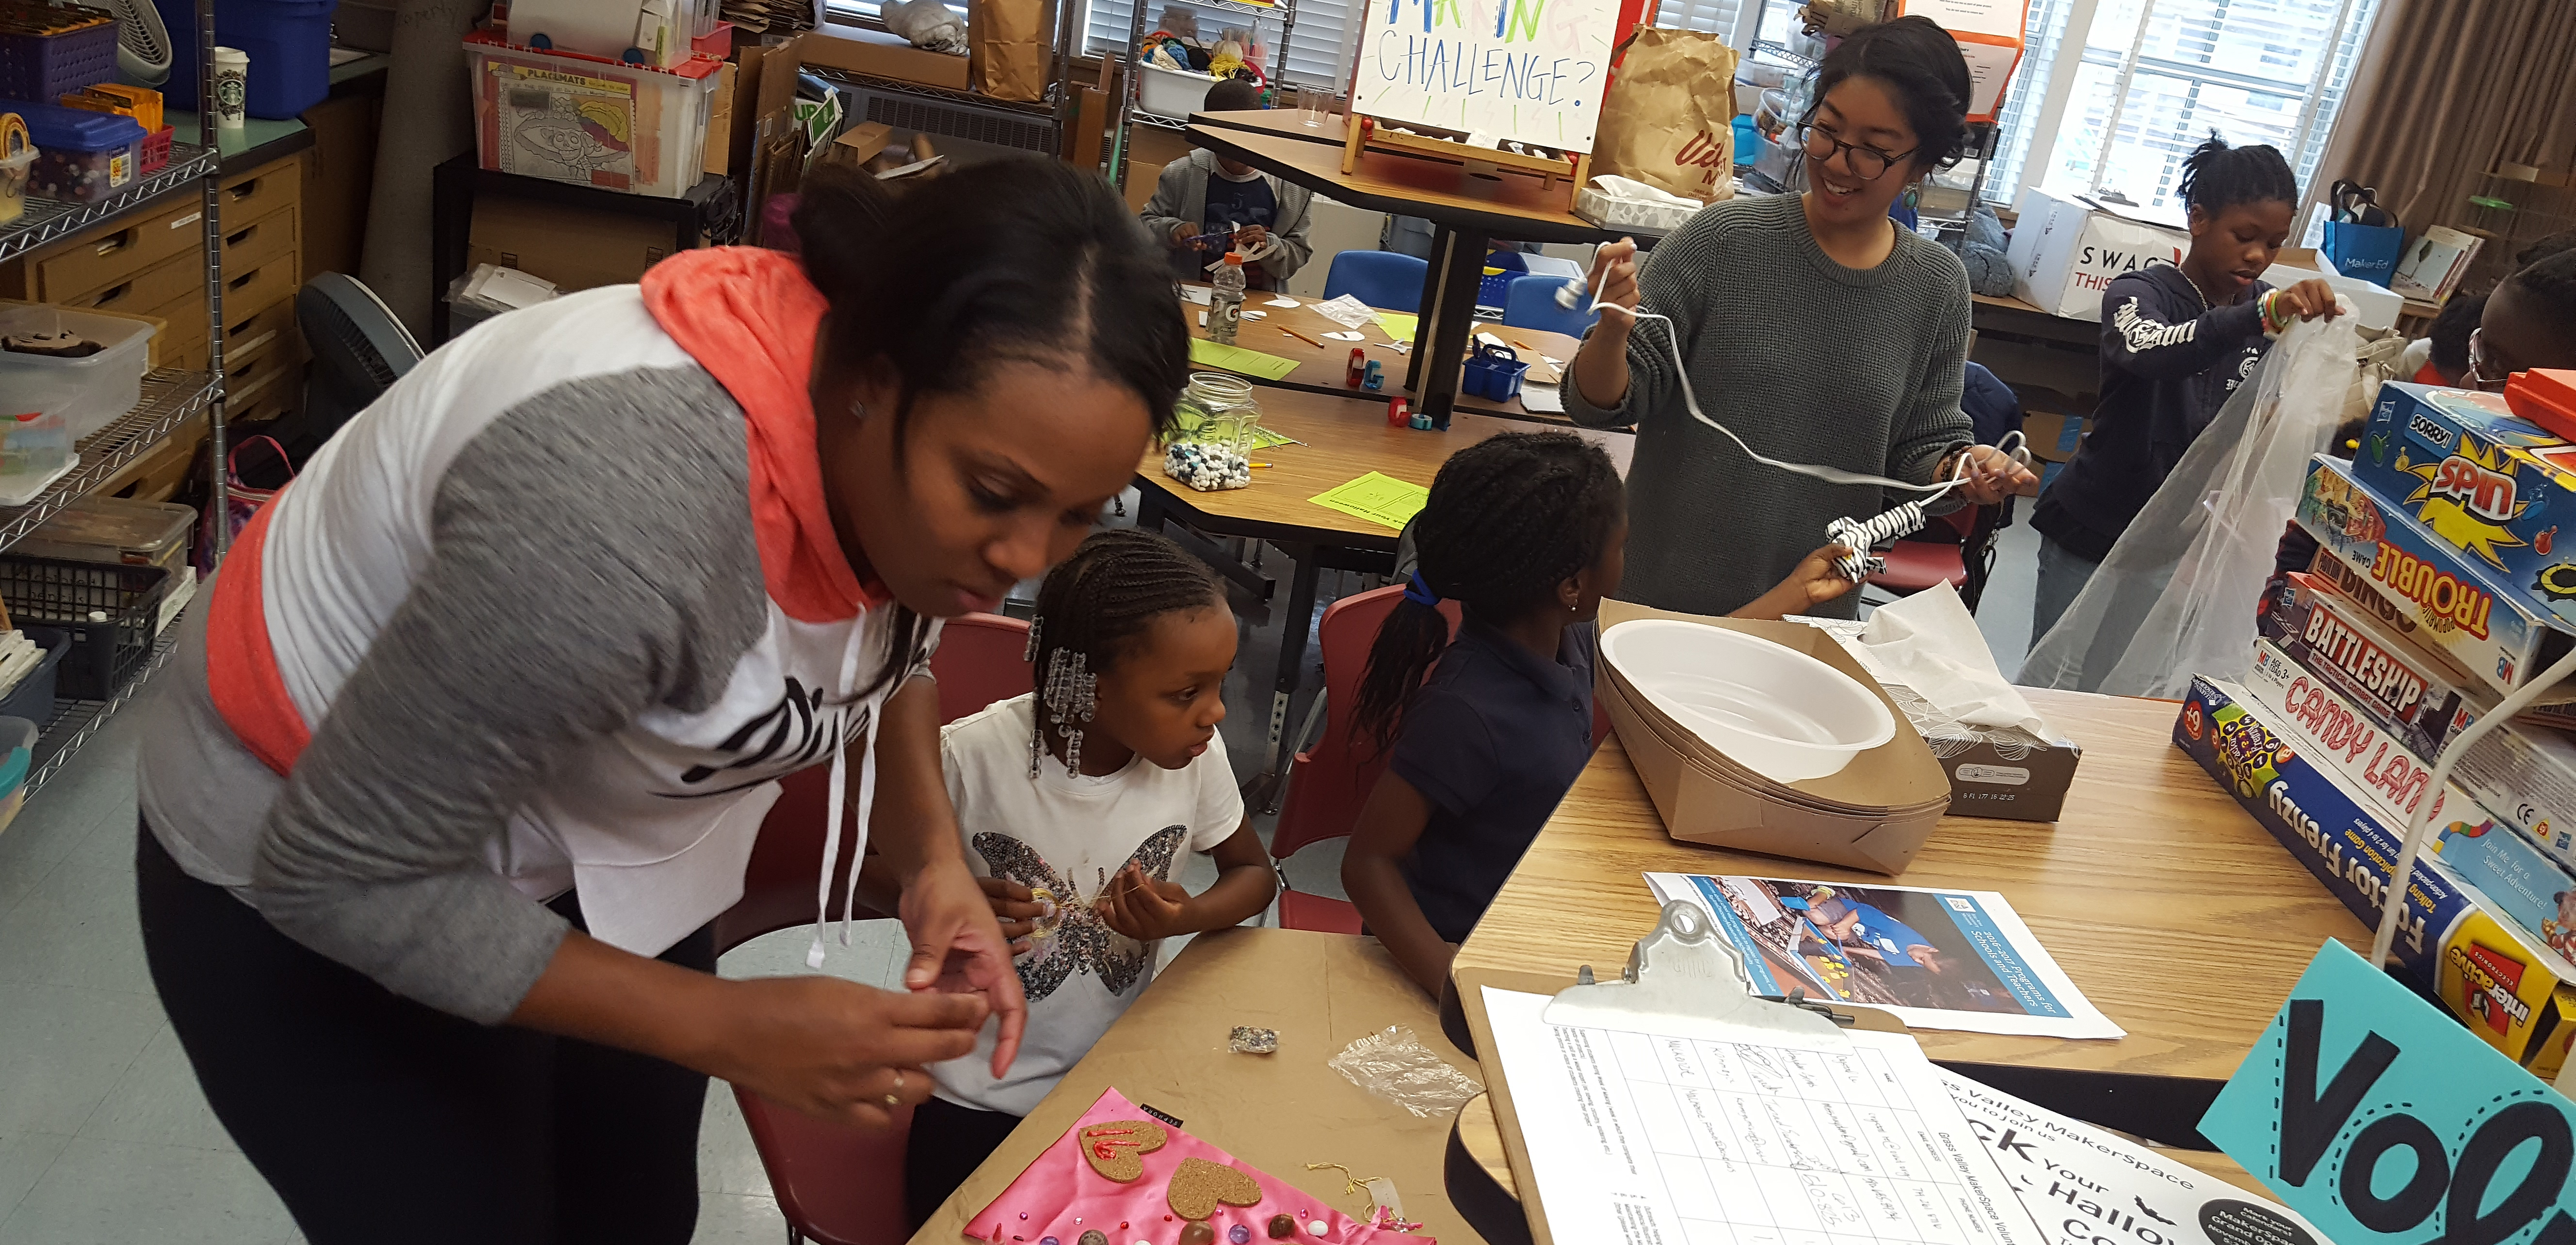 Students making at Grass Valley Elementary School in Oakland, California.